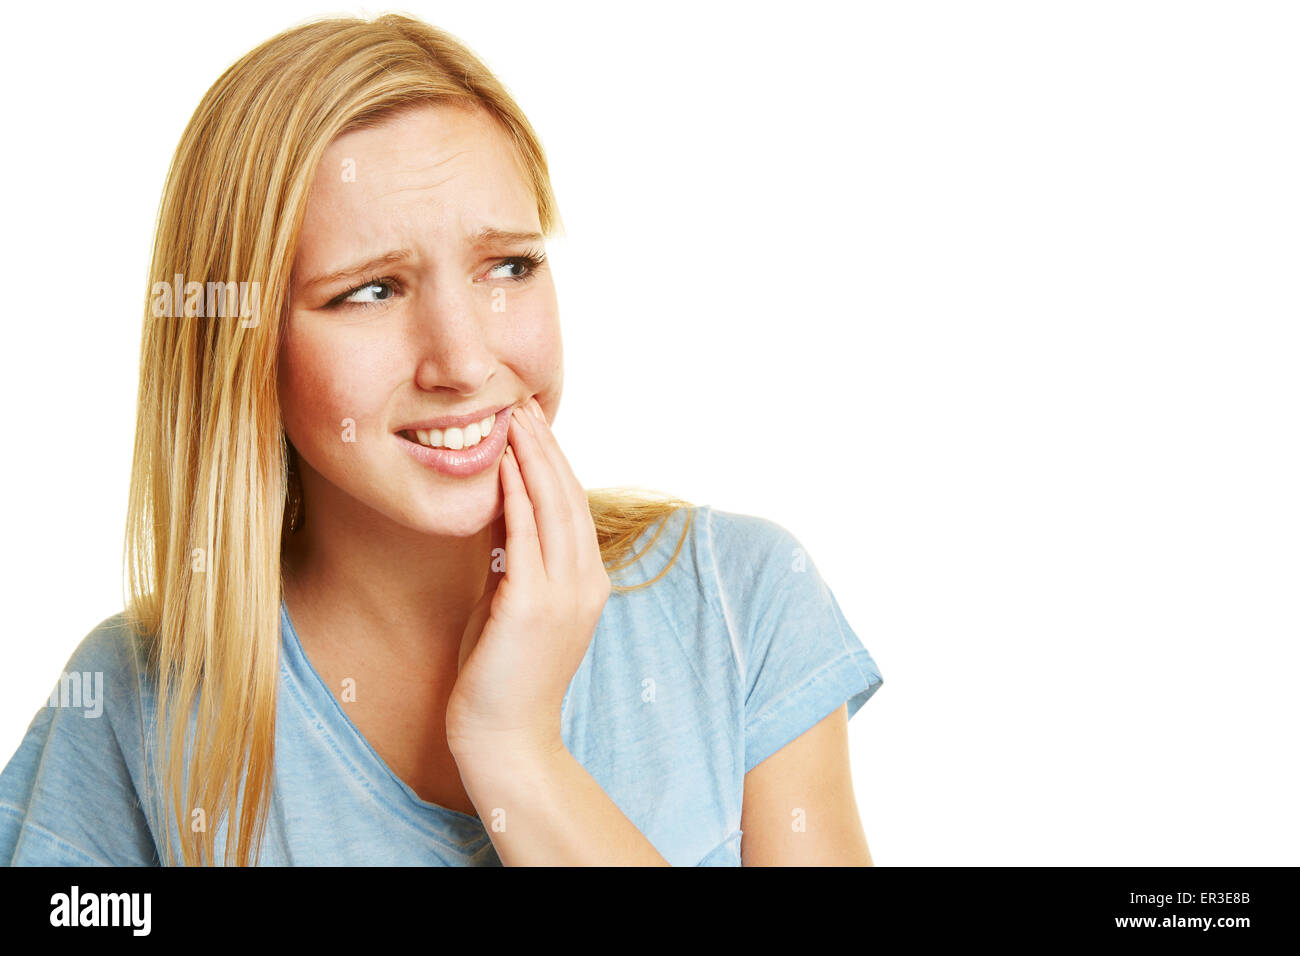 Young woman with toothache holding hand to her mouth - Stock Image